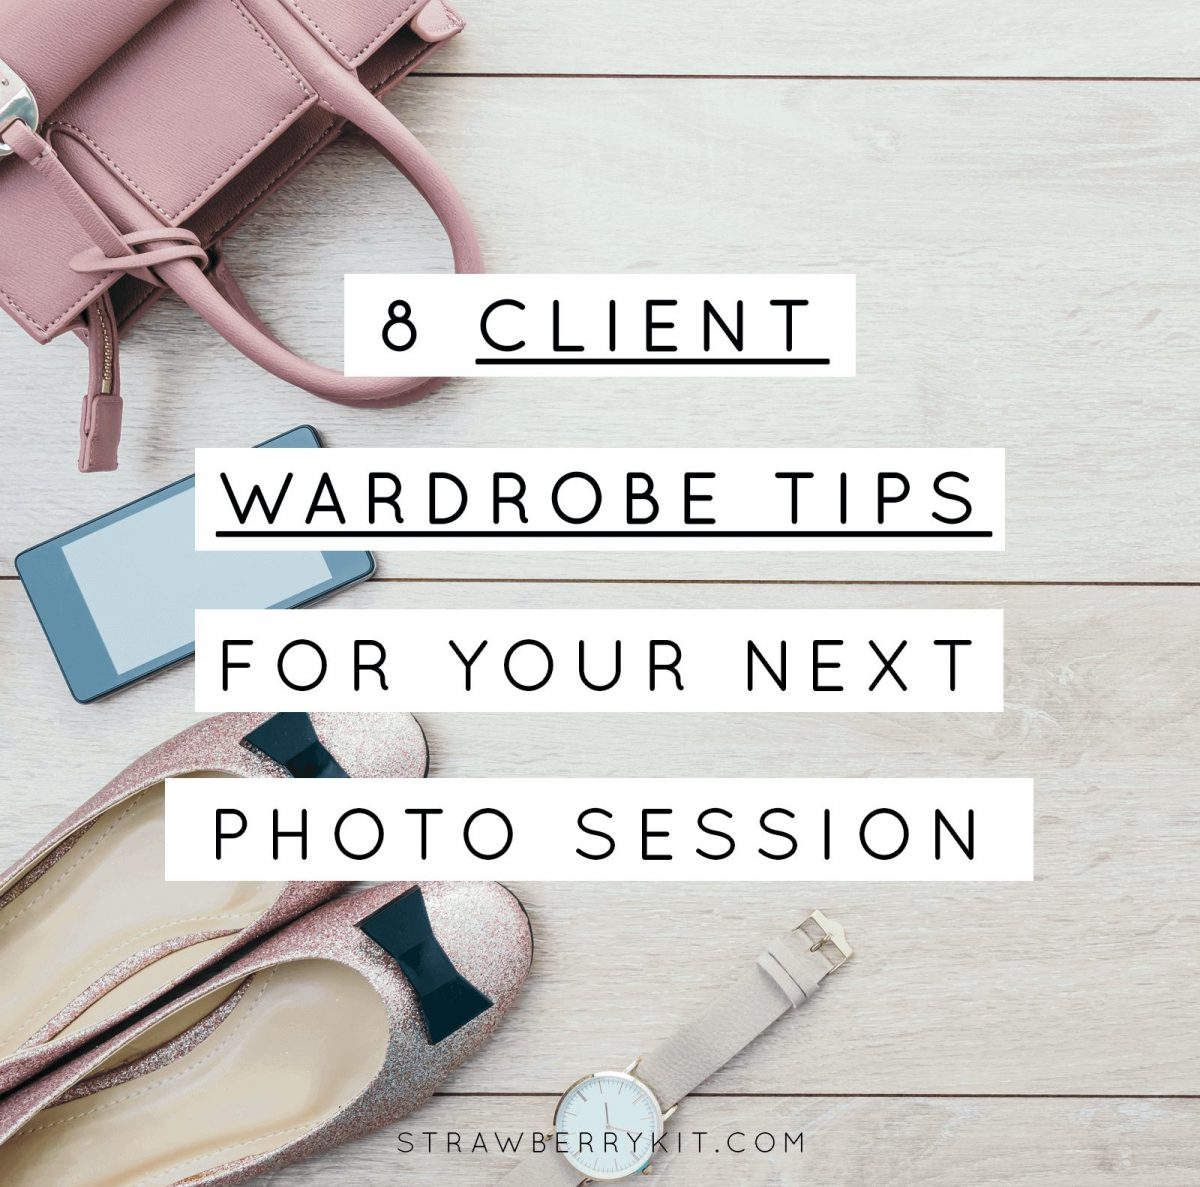 Client wardrobe tips photographer